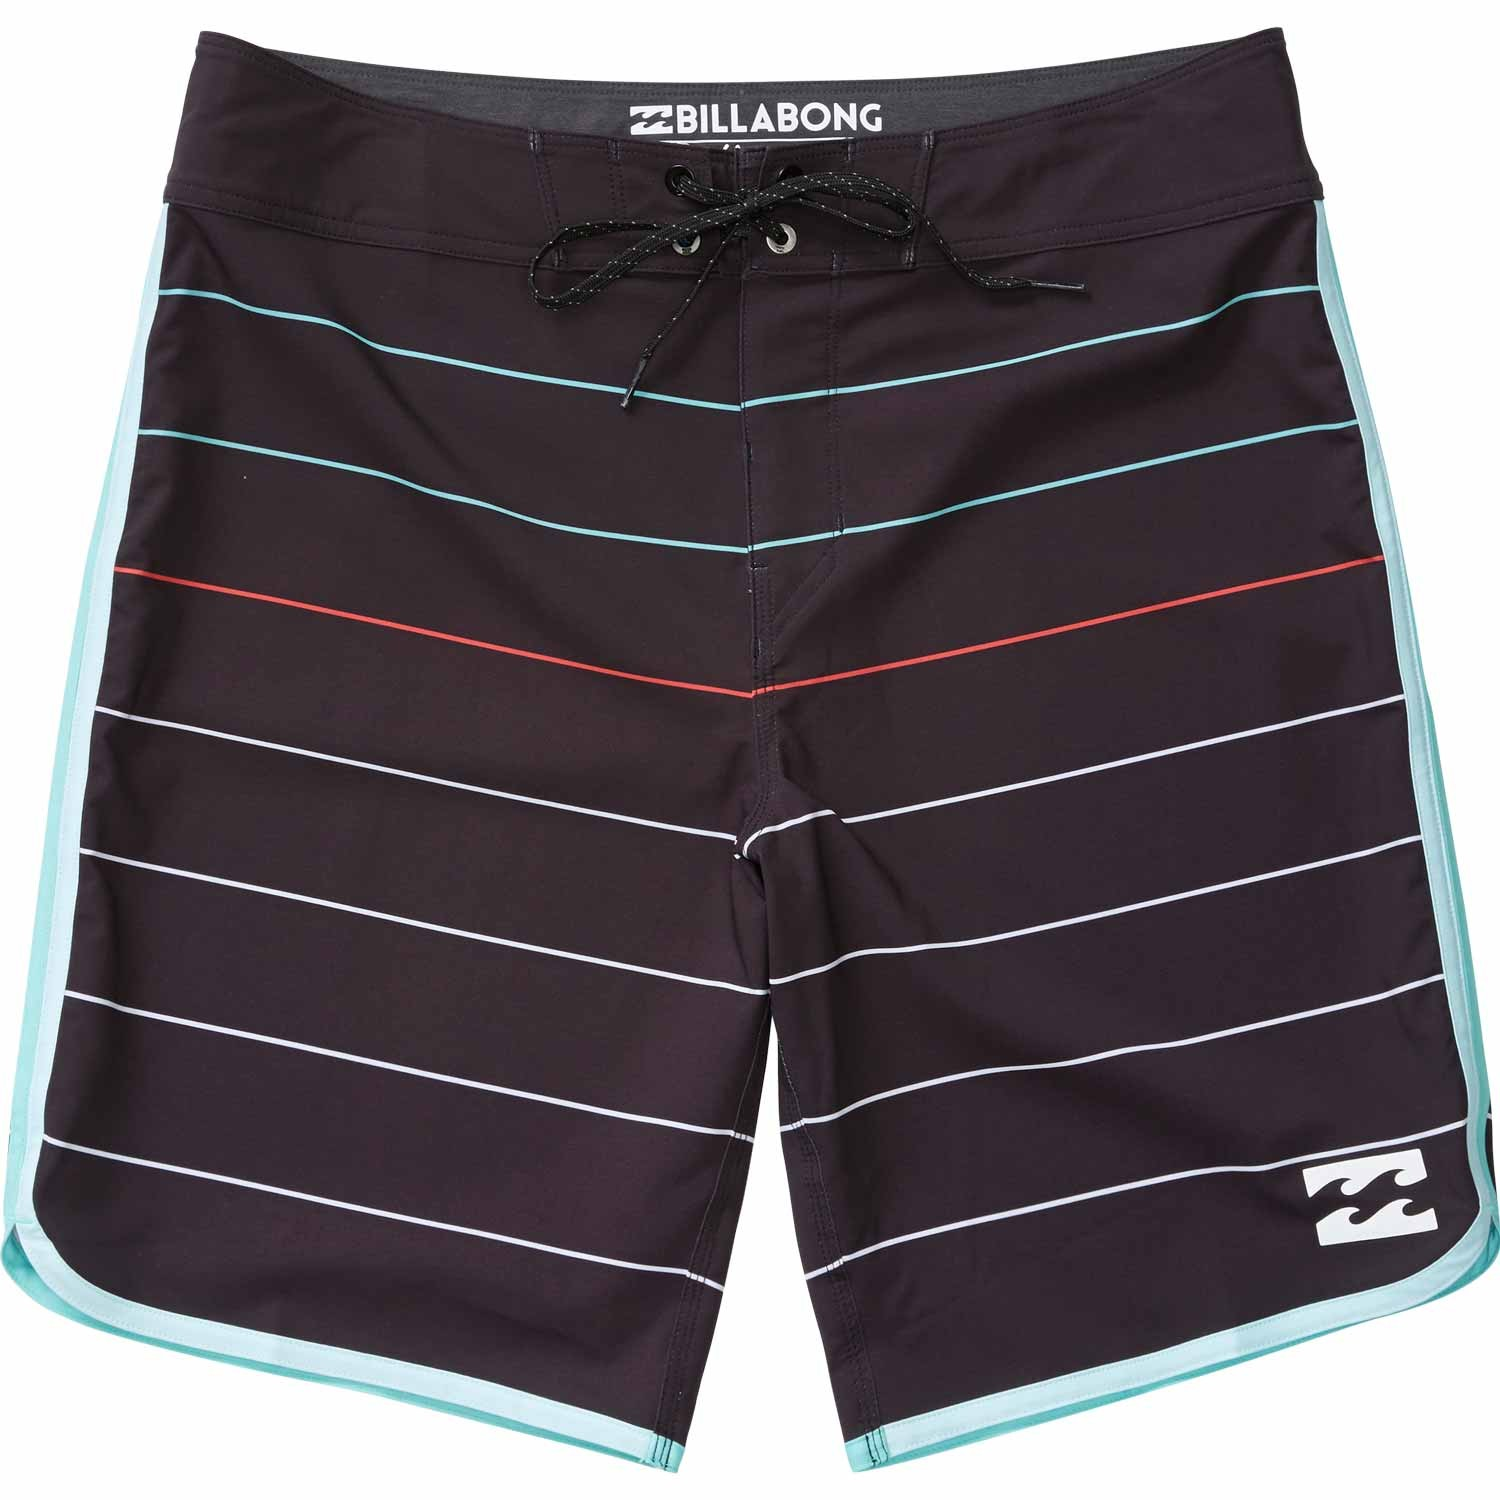 Billabong 73 X Stripe Boardshorts (Men's)